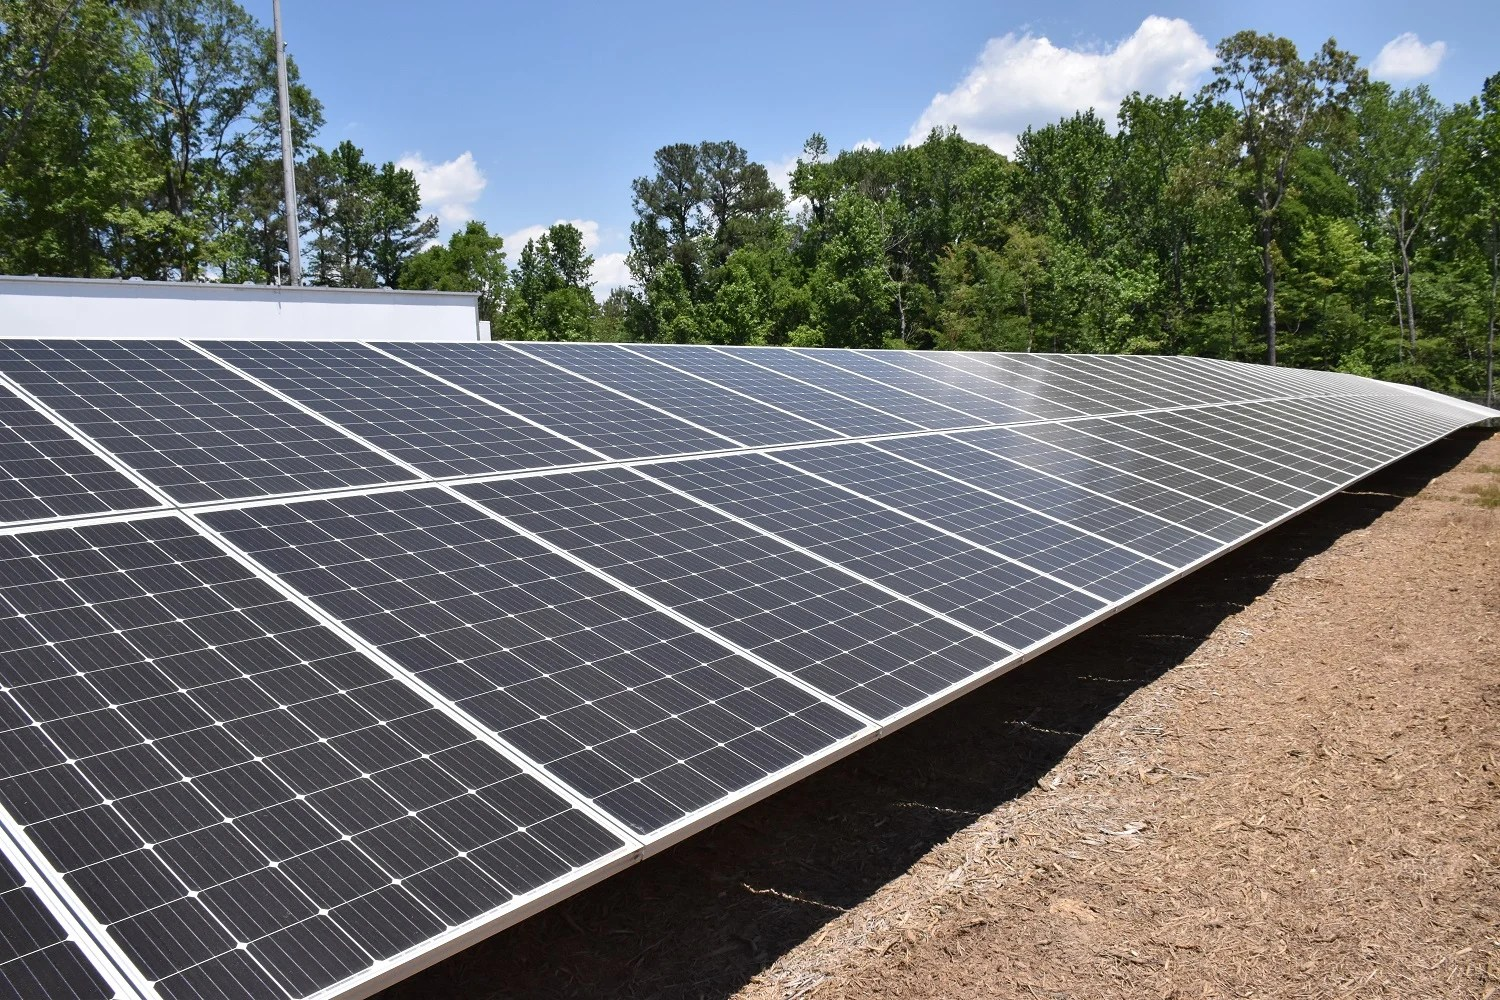 Reynolds Landing in Hoover has its own neighborhood microgrid making use of solar power, among other energy sources. (file)